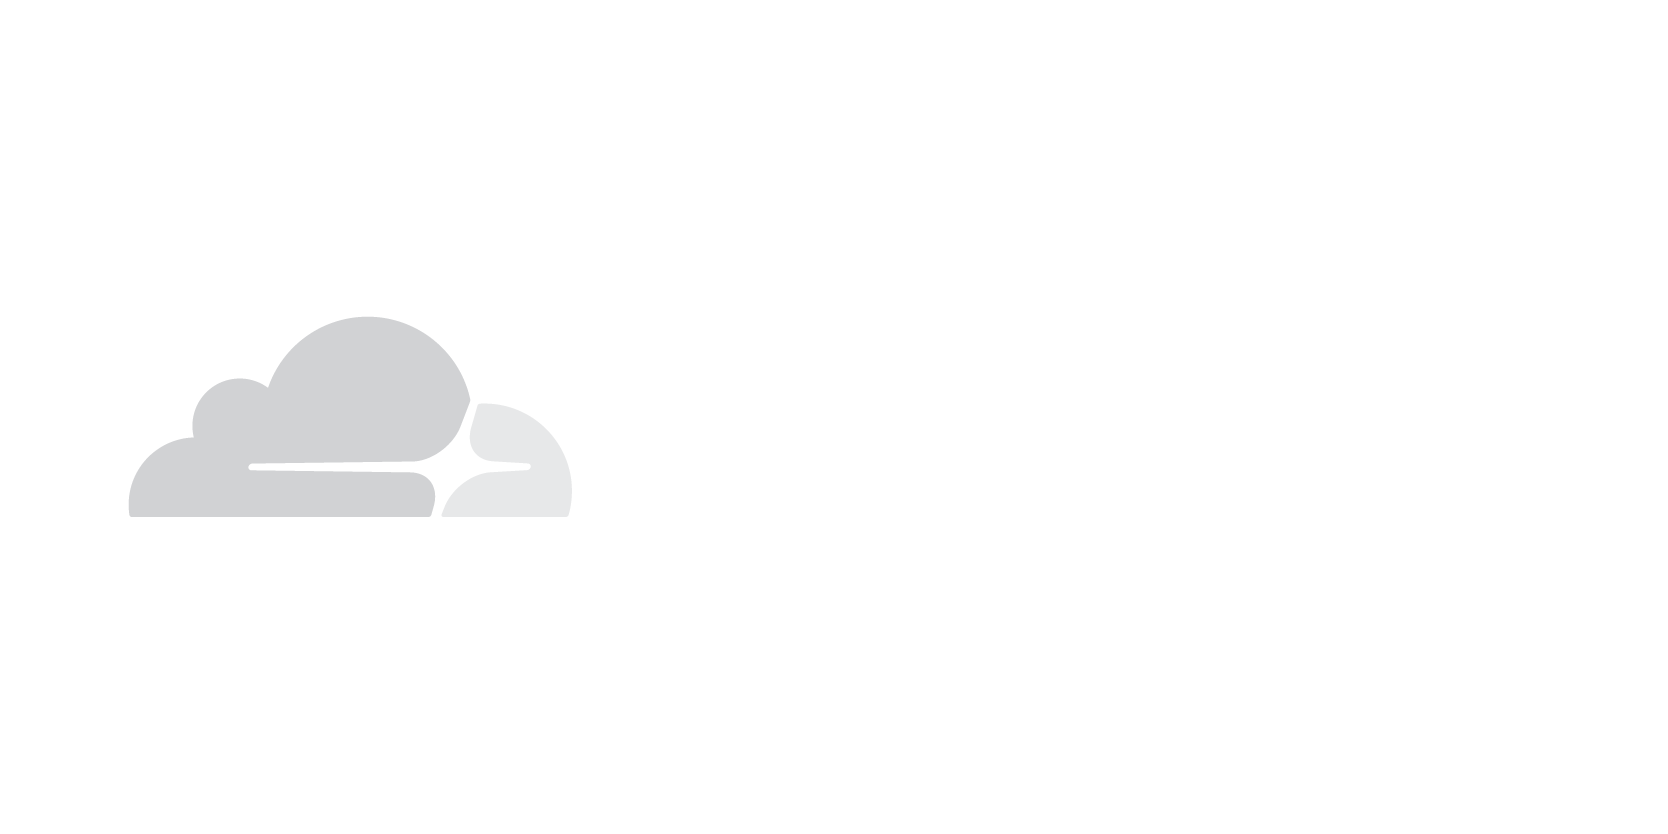 cloudflare-01